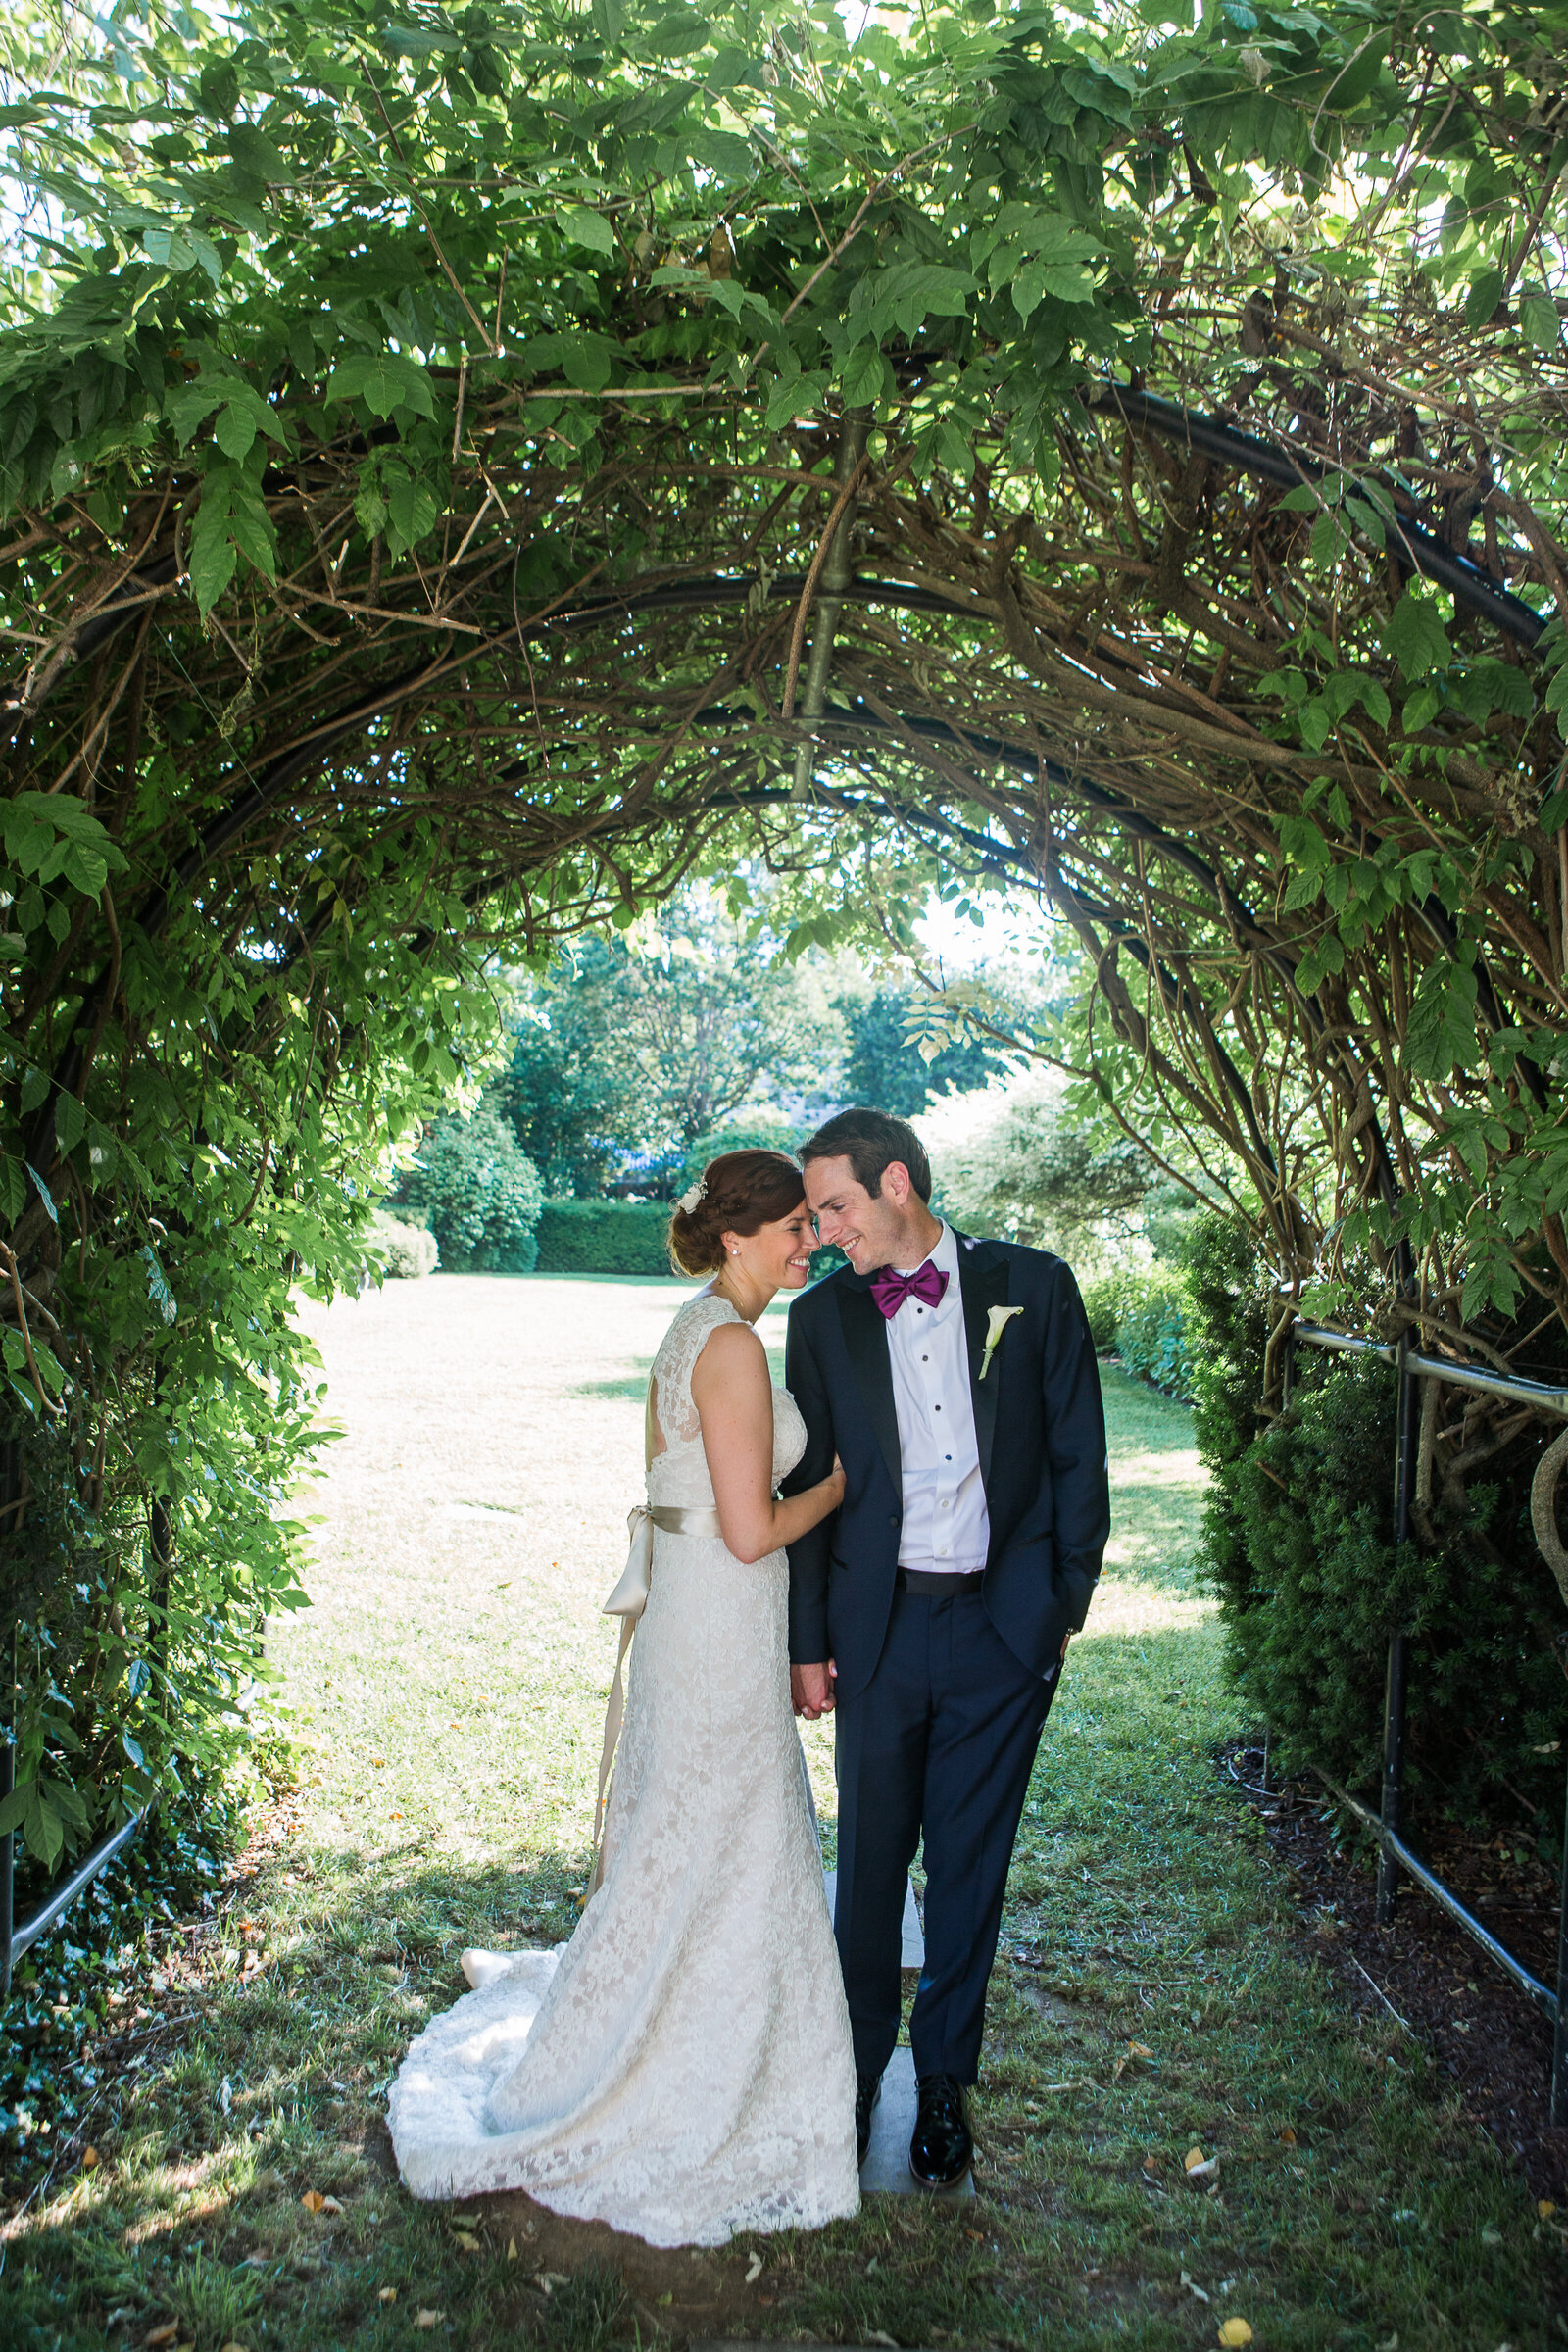 miller_wedding16_00couple_057